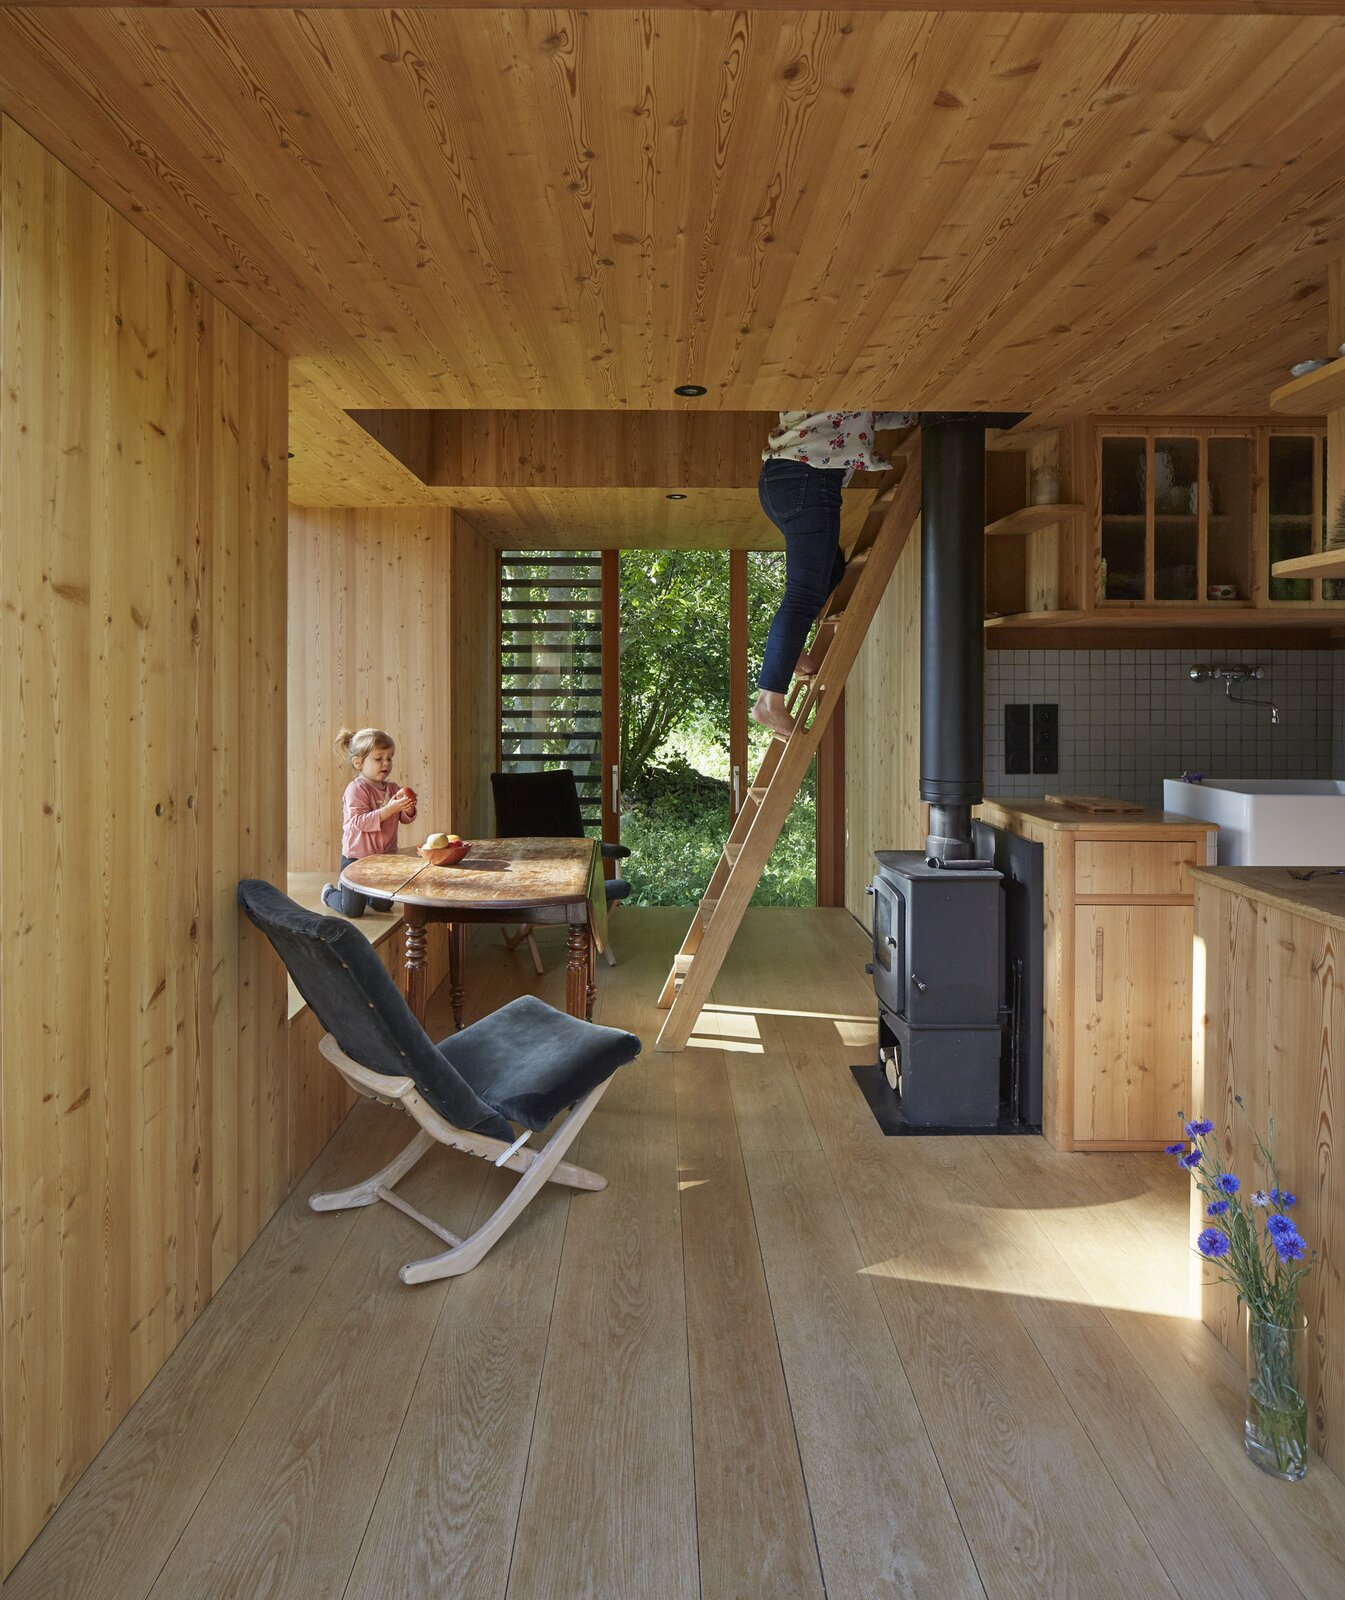 La Petite Maison by arba living areas with ladder leading to the lofts